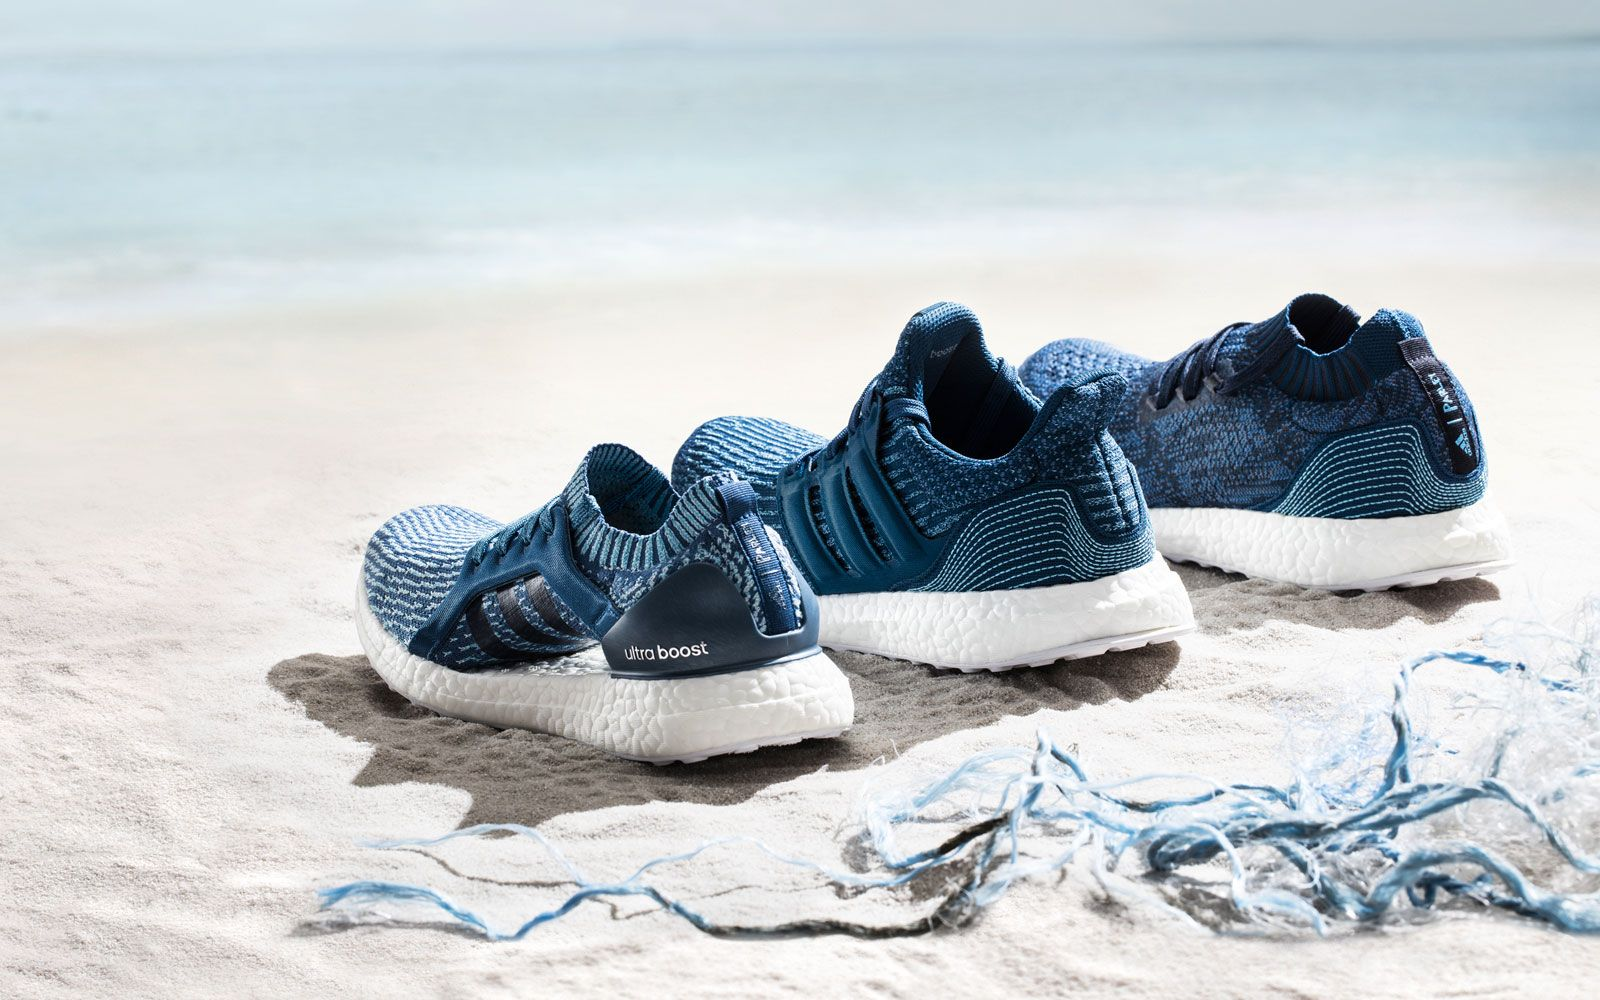 d7ec11b7da6 Adidas will sell more shoes partially made with ocean trash